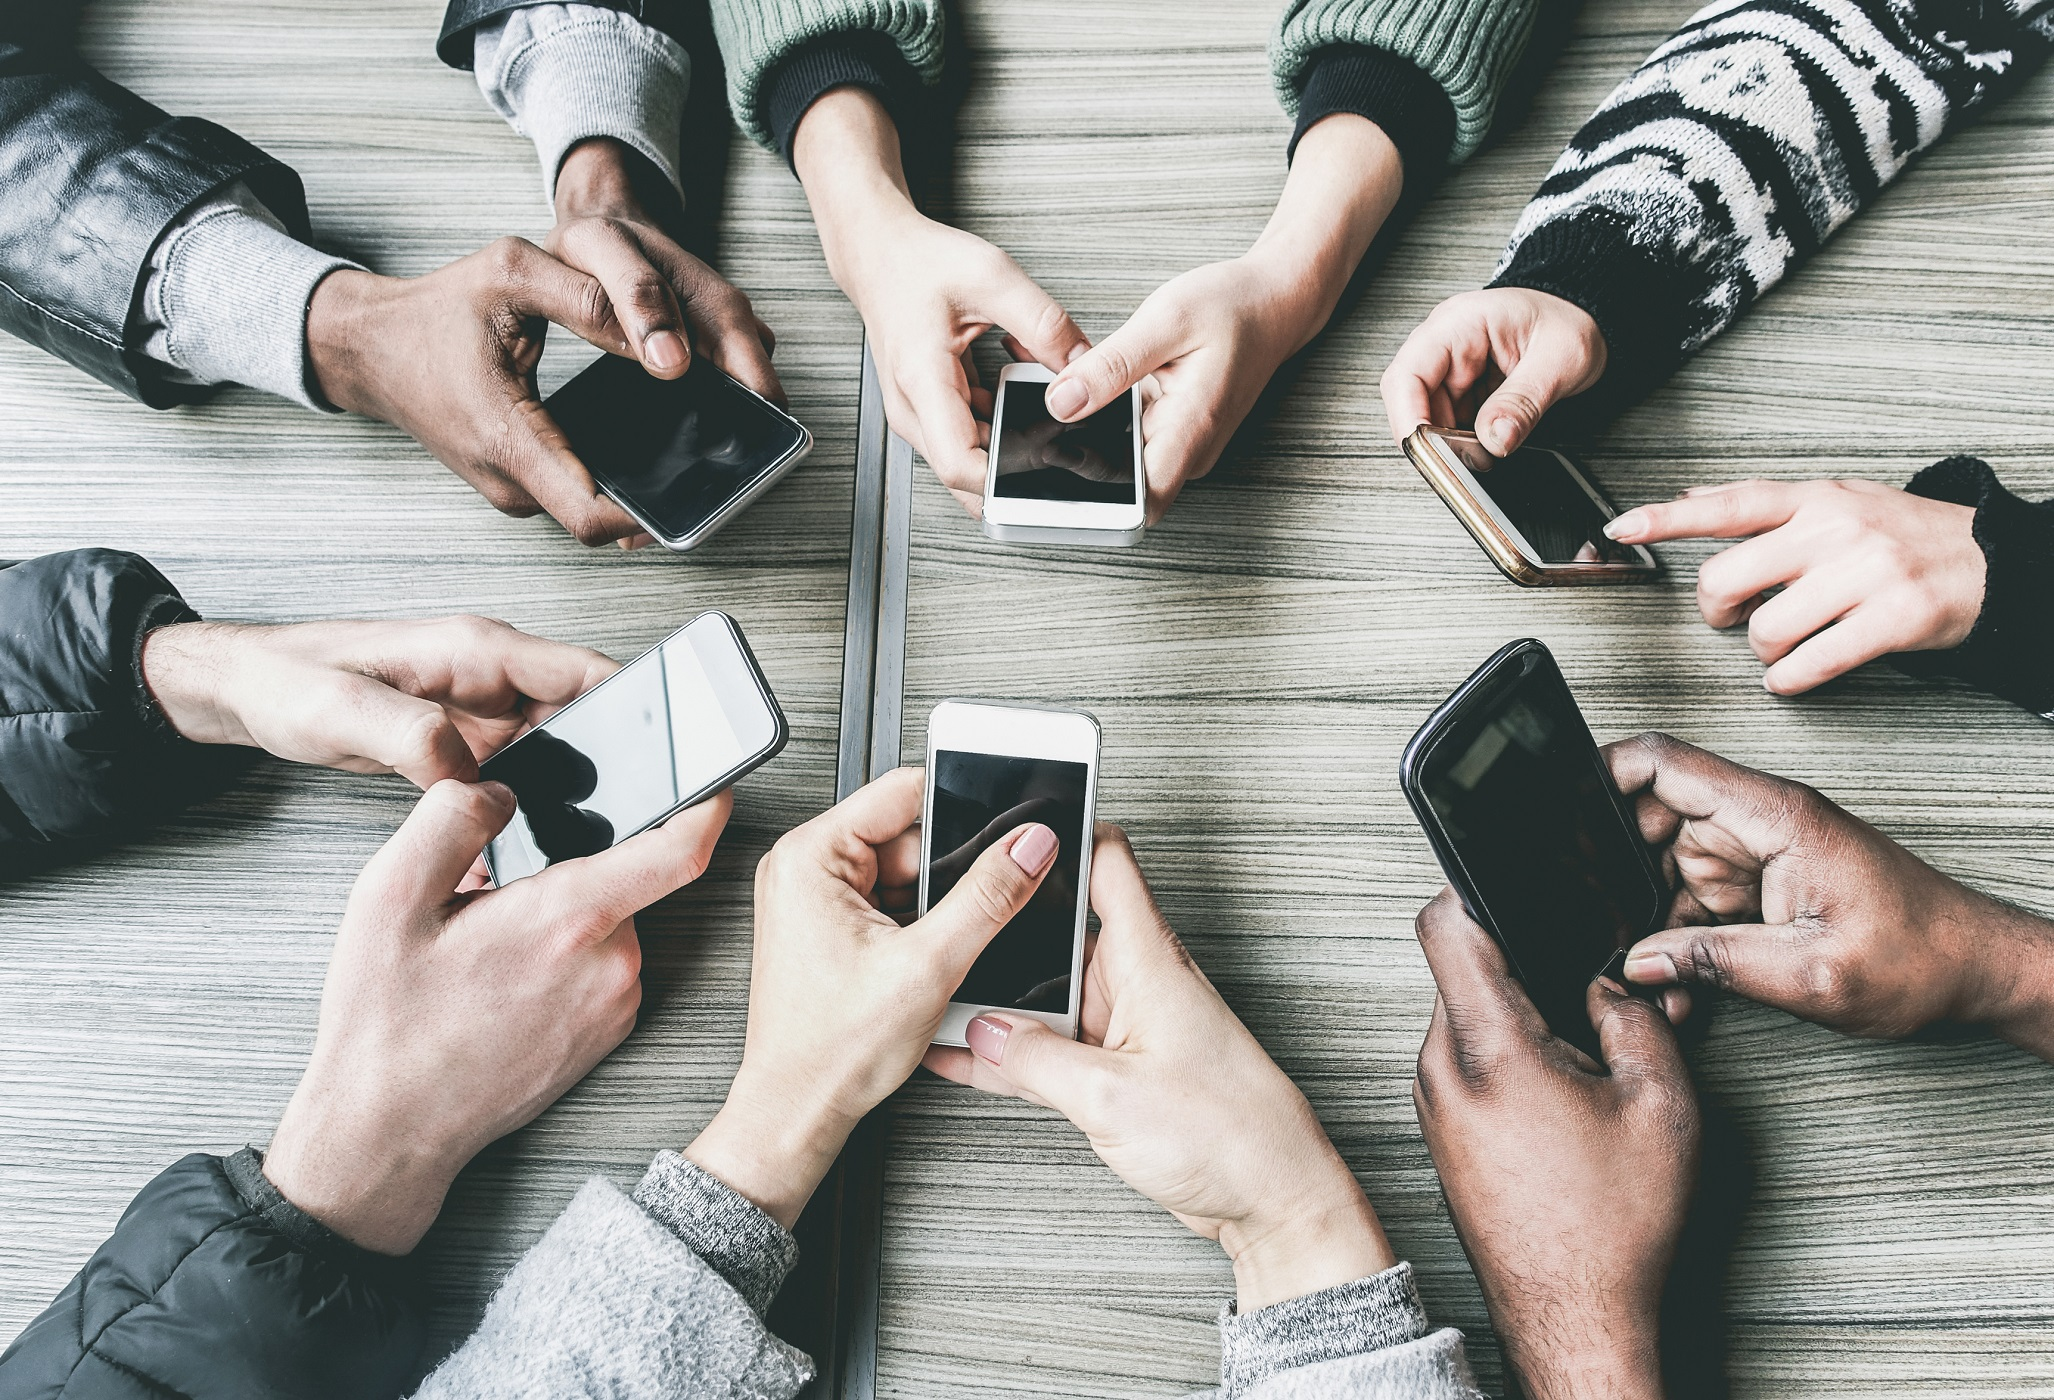 Group of friends having fun together with smartphones